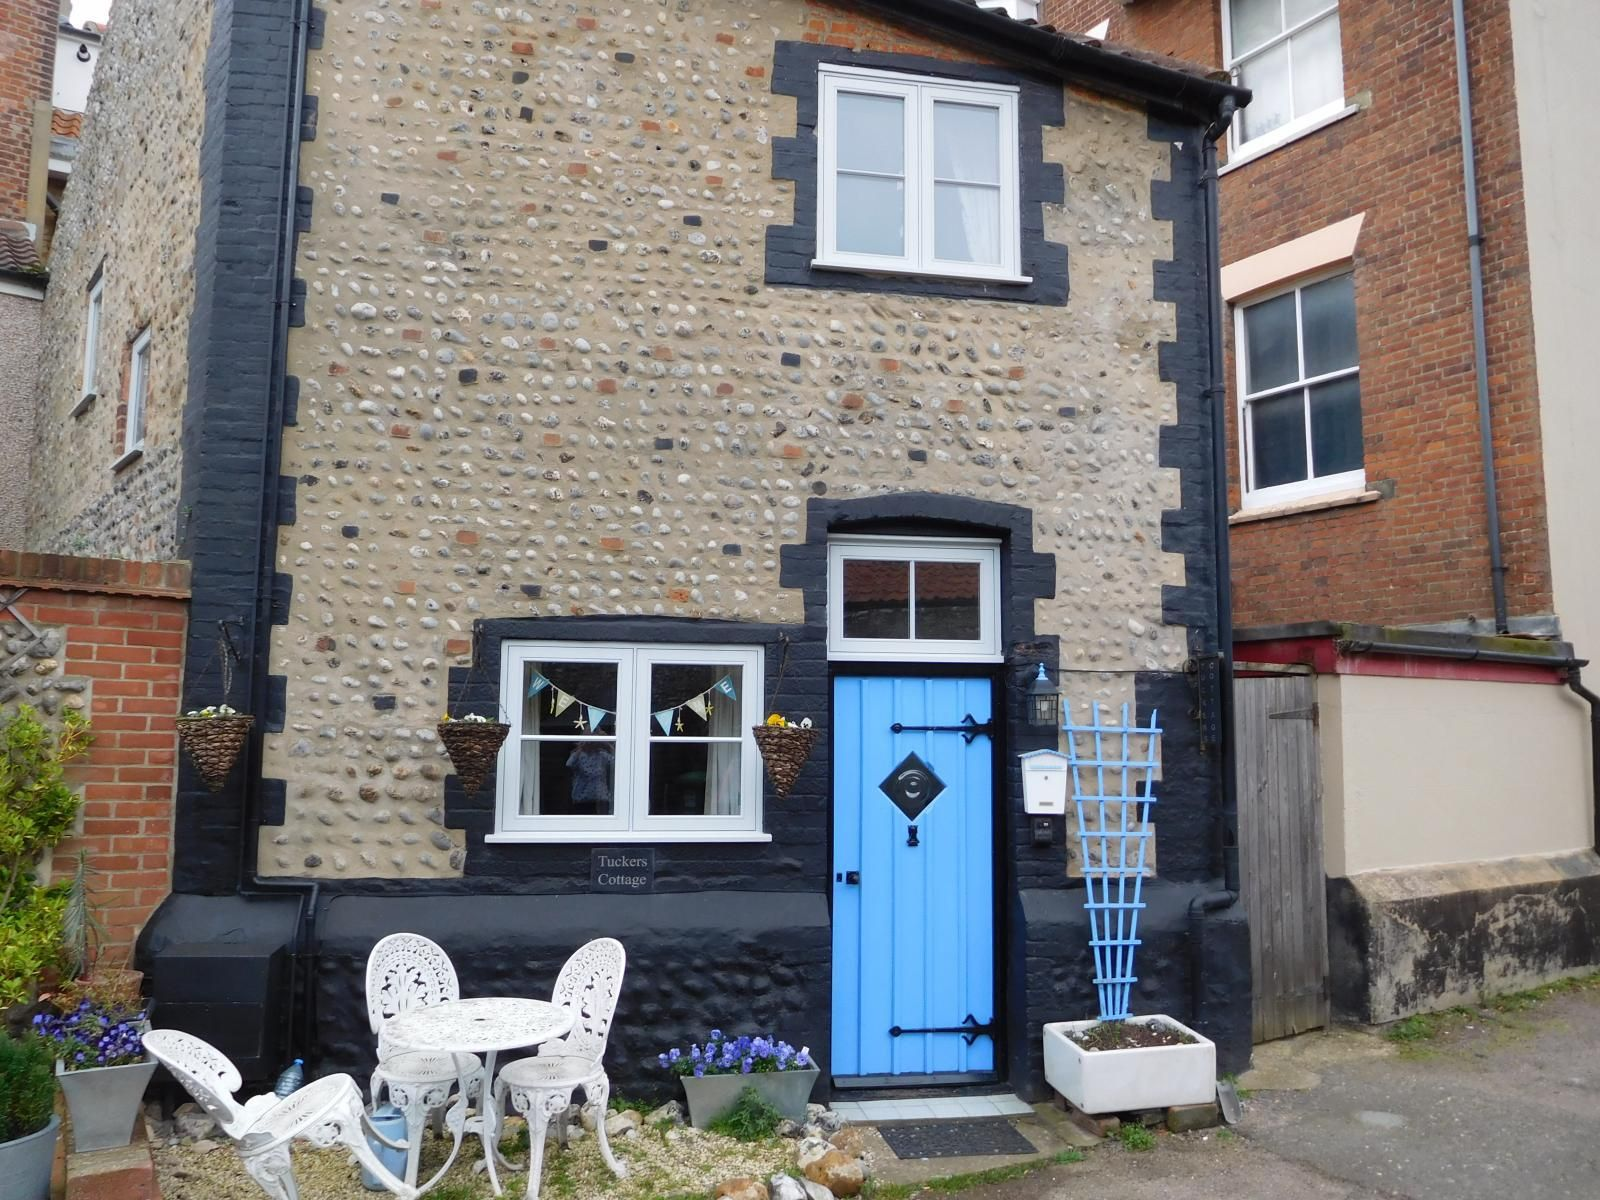 Tuckers Cottage Cromer Norwich Norfolk England Holiday Travel Accommodation Self Ca Holiday Cottage